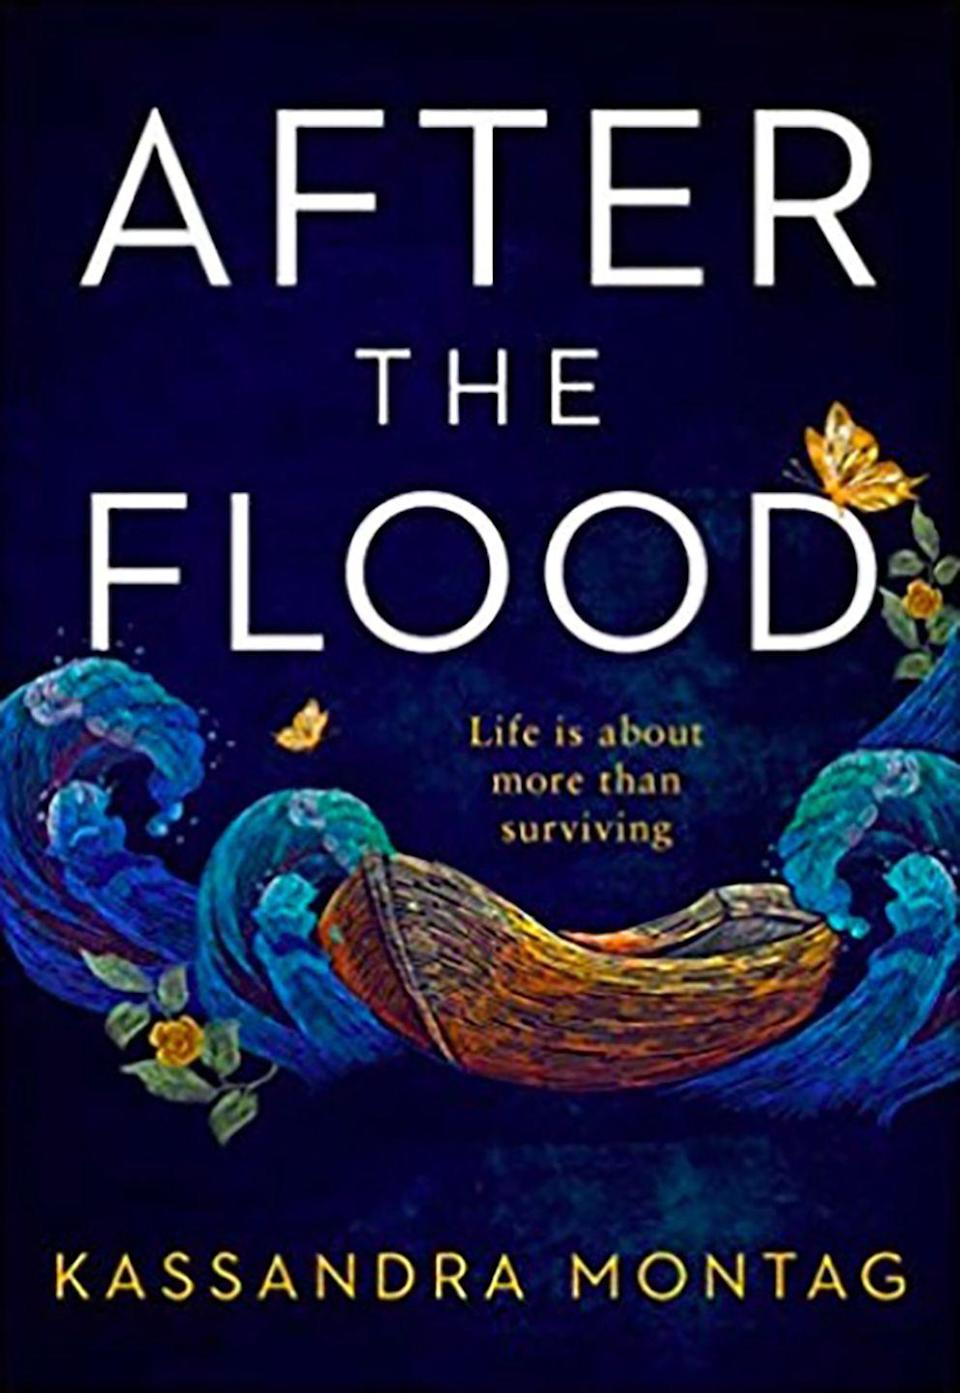 """<p><a class=""""link rapid-noclick-resp"""" href=""""https://www.amazon.co.uk/After-Flood-Kassandra-Montag/dp/0008319553/ref=sr_1_2?keywords=After+the+Flood+by+Kassandra+Montag&qid=1567161803&s=gateway&sr=8-2&tag=hearstuk-yahoo-21&ascsubtag=%5Bartid%7C1919.g.15922606%5Bsrc%7Cyahoo-uk"""" rel=""""nofollow noopener"""" target=""""_blank"""" data-ylk=""""slk:SHOP NOW"""">SHOP NOW</a> £11.34, Amazon</p><p>While Myra was pregnant with daughter Pearl, Jacob left her with their other daughter, Row, in tow. Despite leading a happy and tranquil life, Myra has never given up on the thought of reuniting with Row, and so when a chance encounter presents itself, she scoops up 6-year-old Pearl and they embark on a strange journey to find her. </p>"""